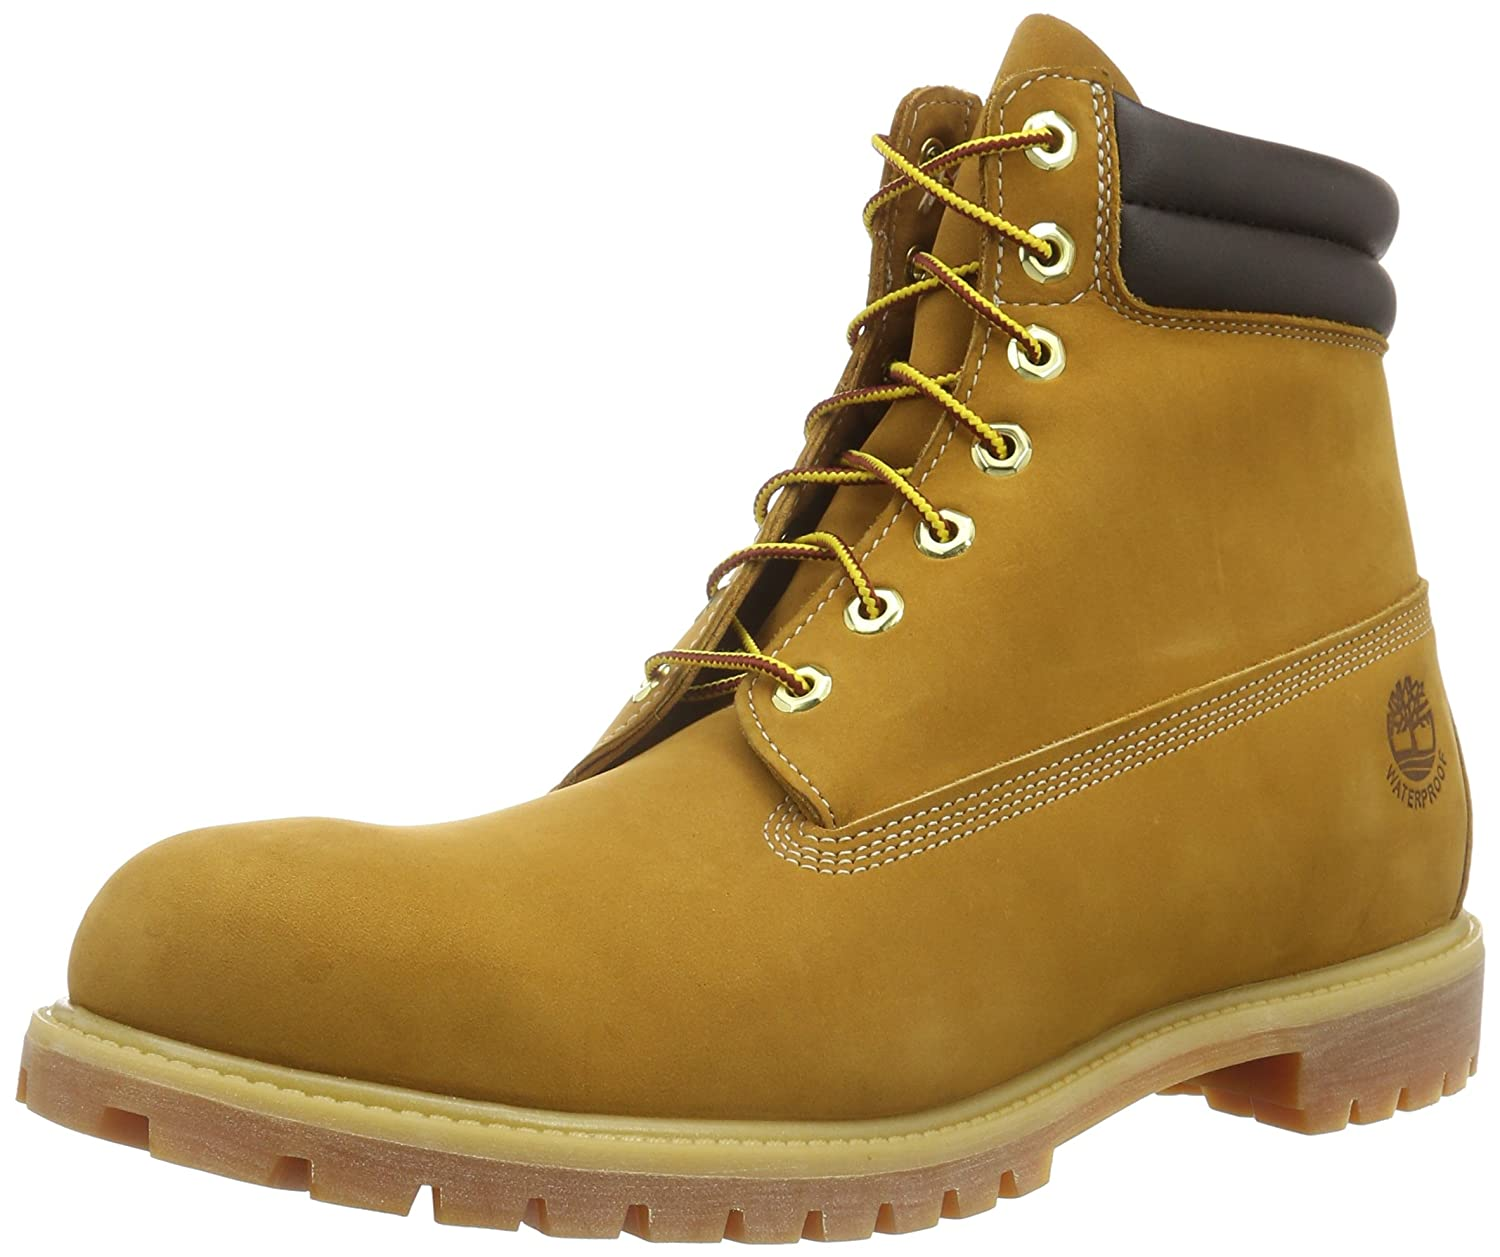 TALLA 45 EU. Timberland 6 In Double Collar Waterproof (Wide Fit), Botas para Hombre